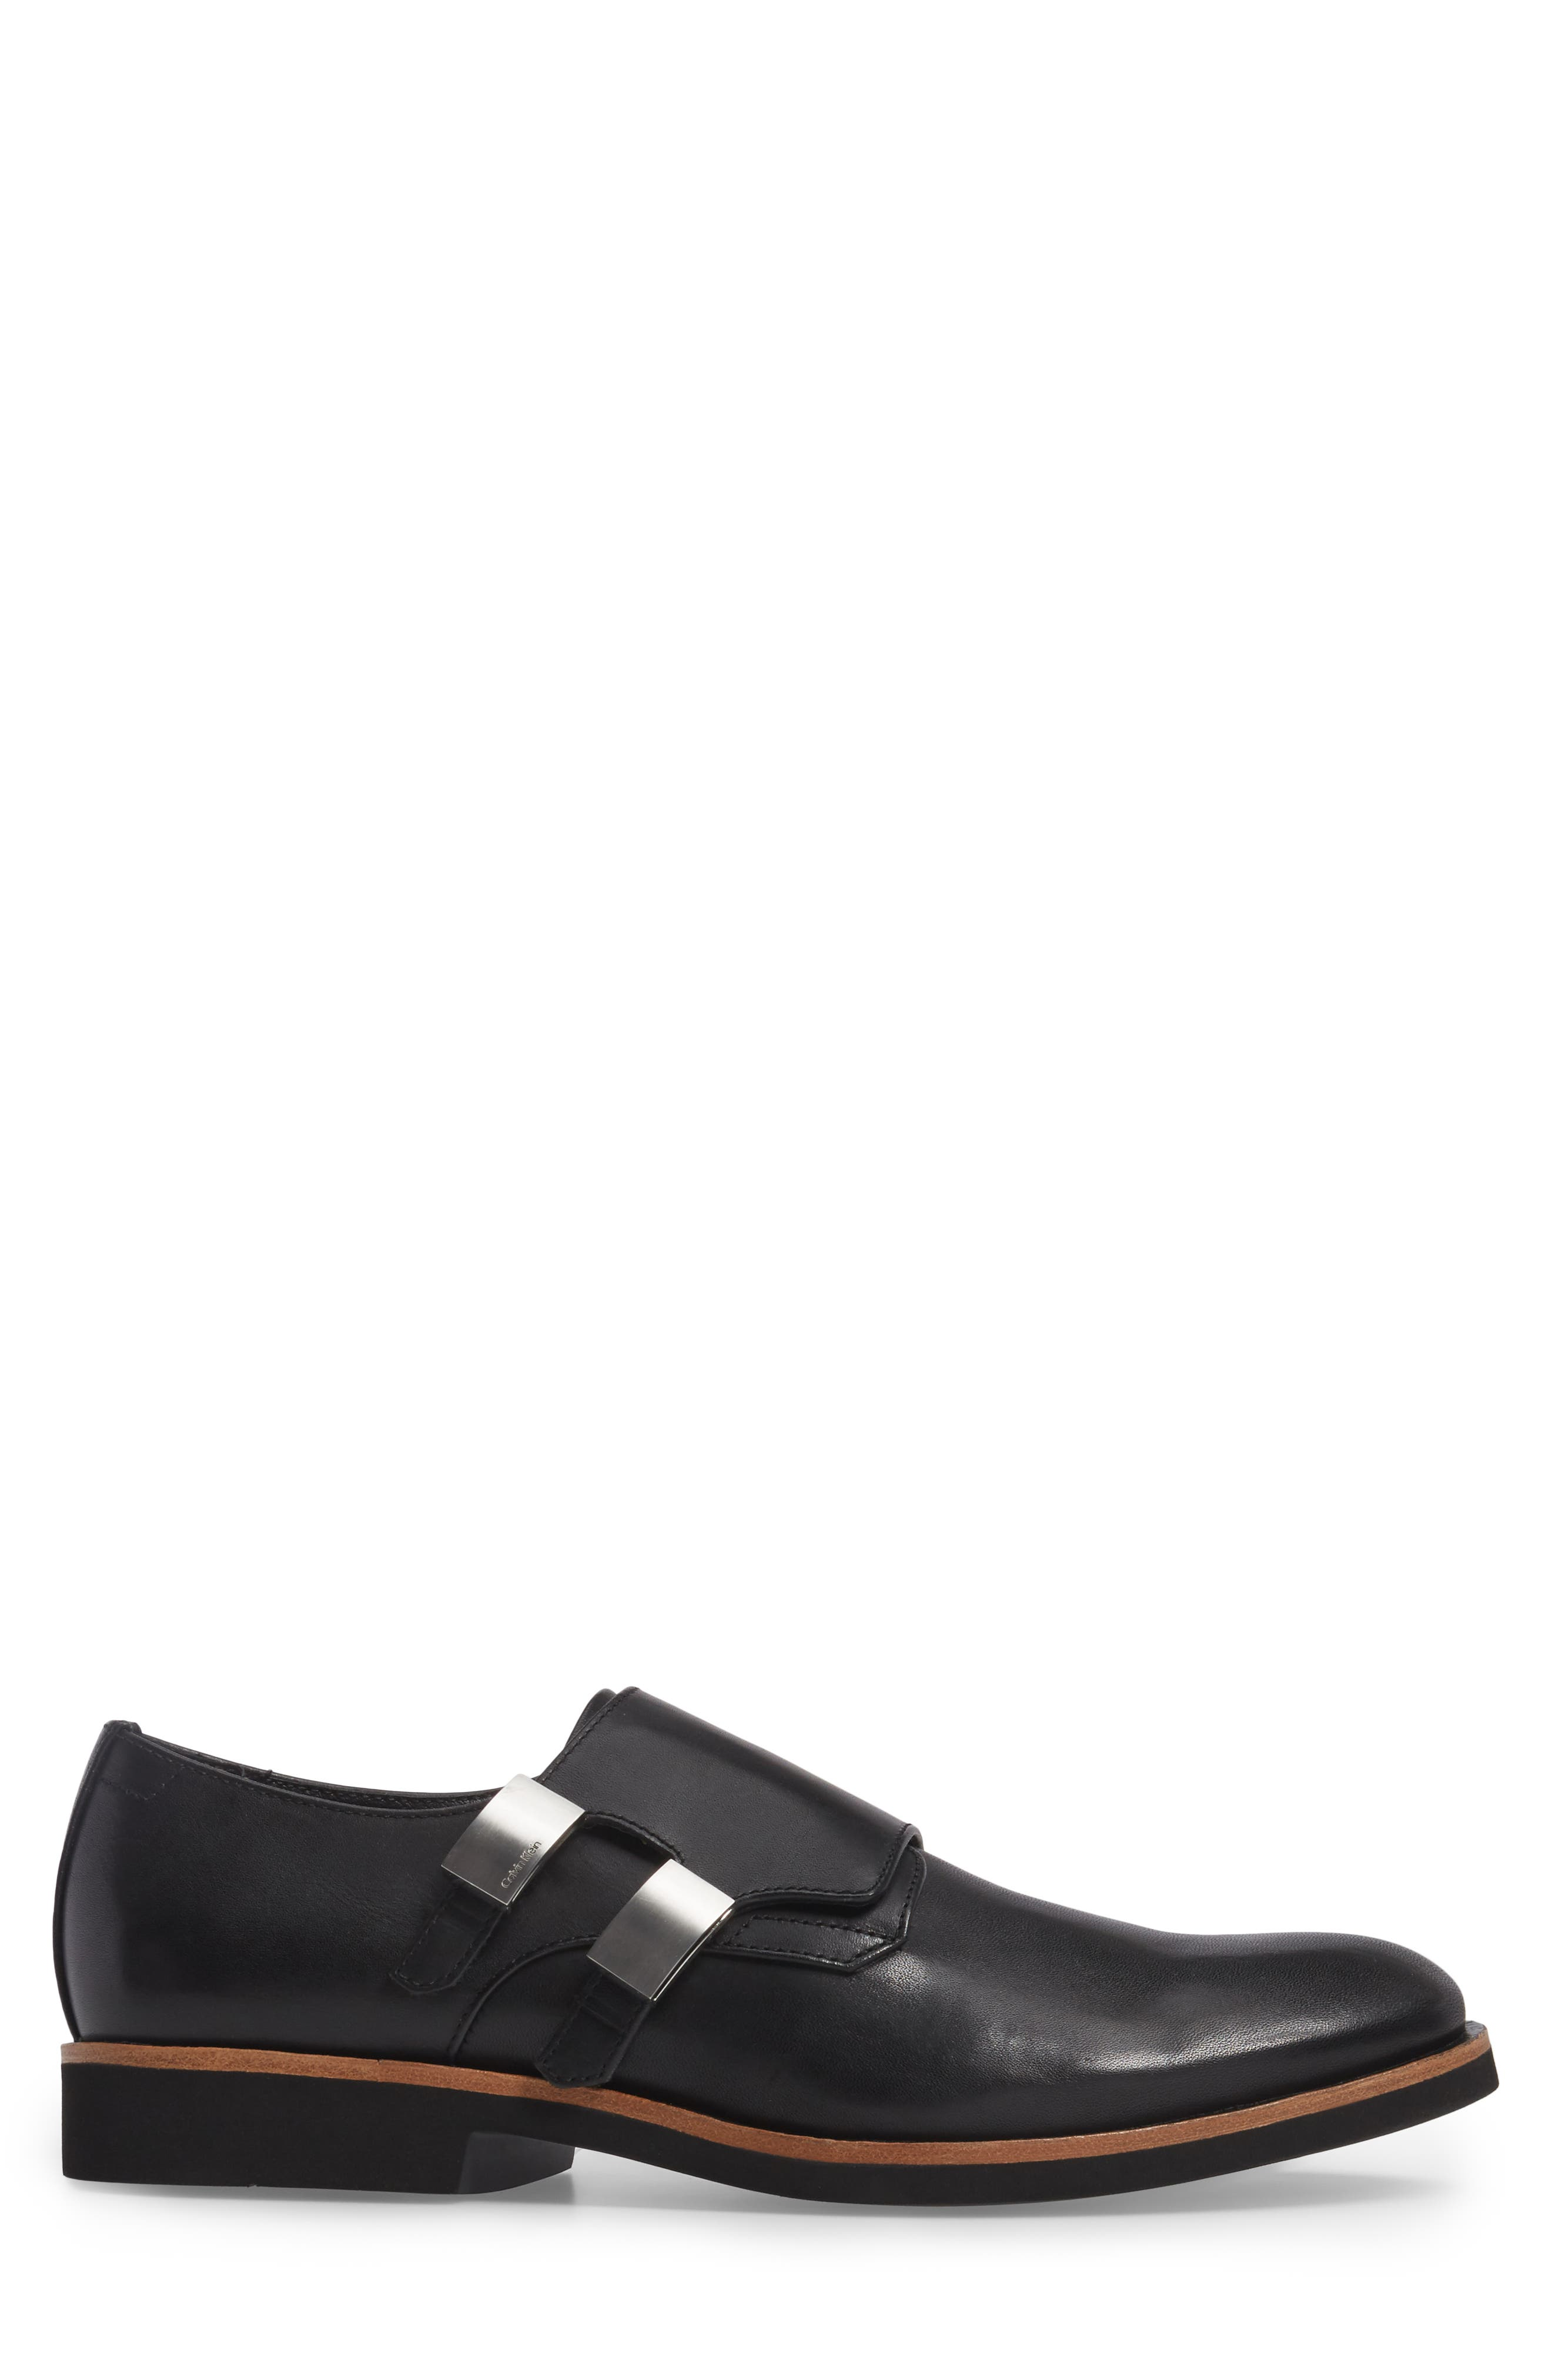 Finnegan Double Monk Strap Shoe,                             Alternate thumbnail 5, color,